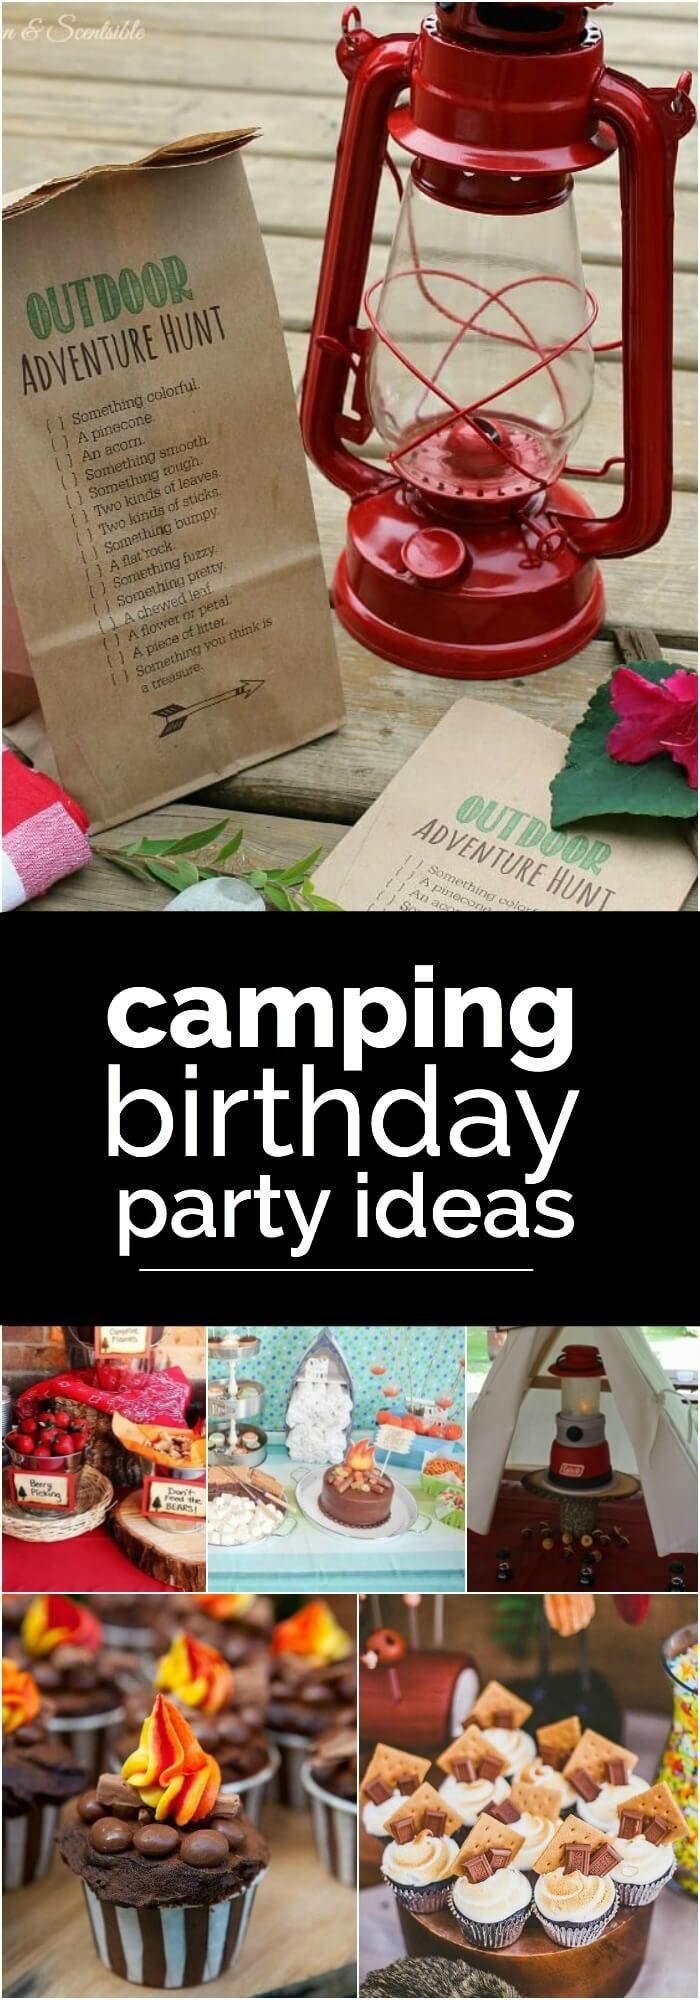 360 best images about Boy's Camping Cookout Party on Pinterest